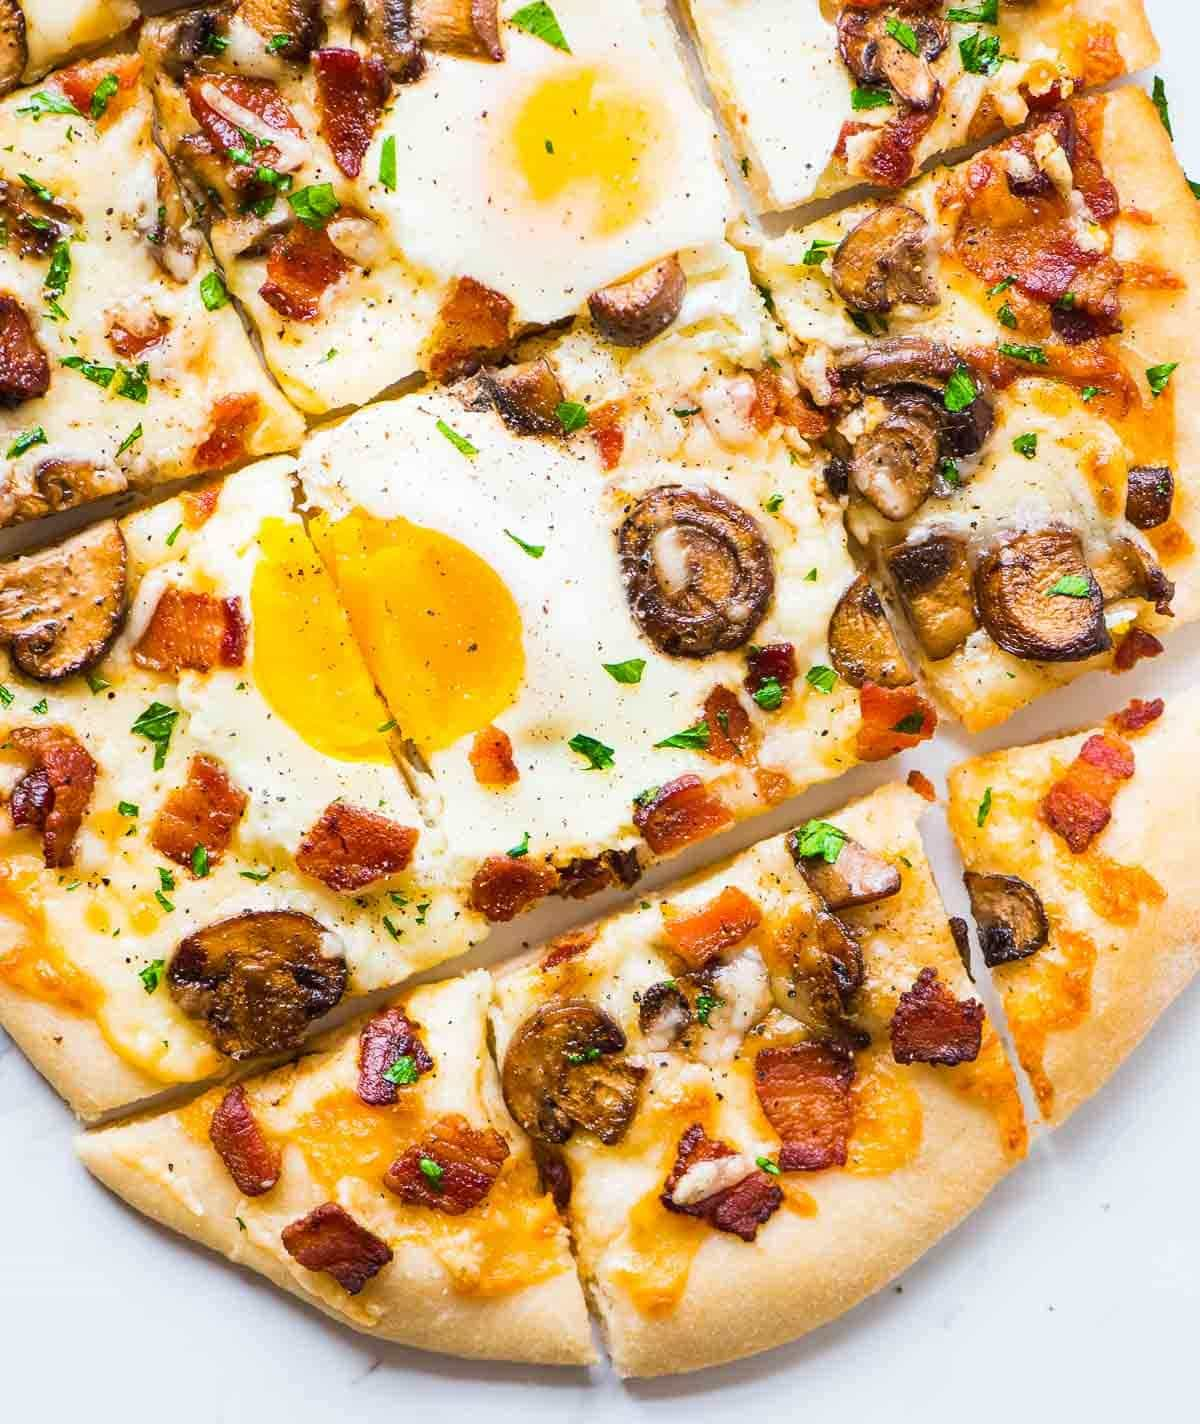 Carbonara Pizza – Crispy bacon, garlic, cream, and sunny side up eggs on a fluffy homemade pizza crust. Recipe at wellplated.com | @wellplated